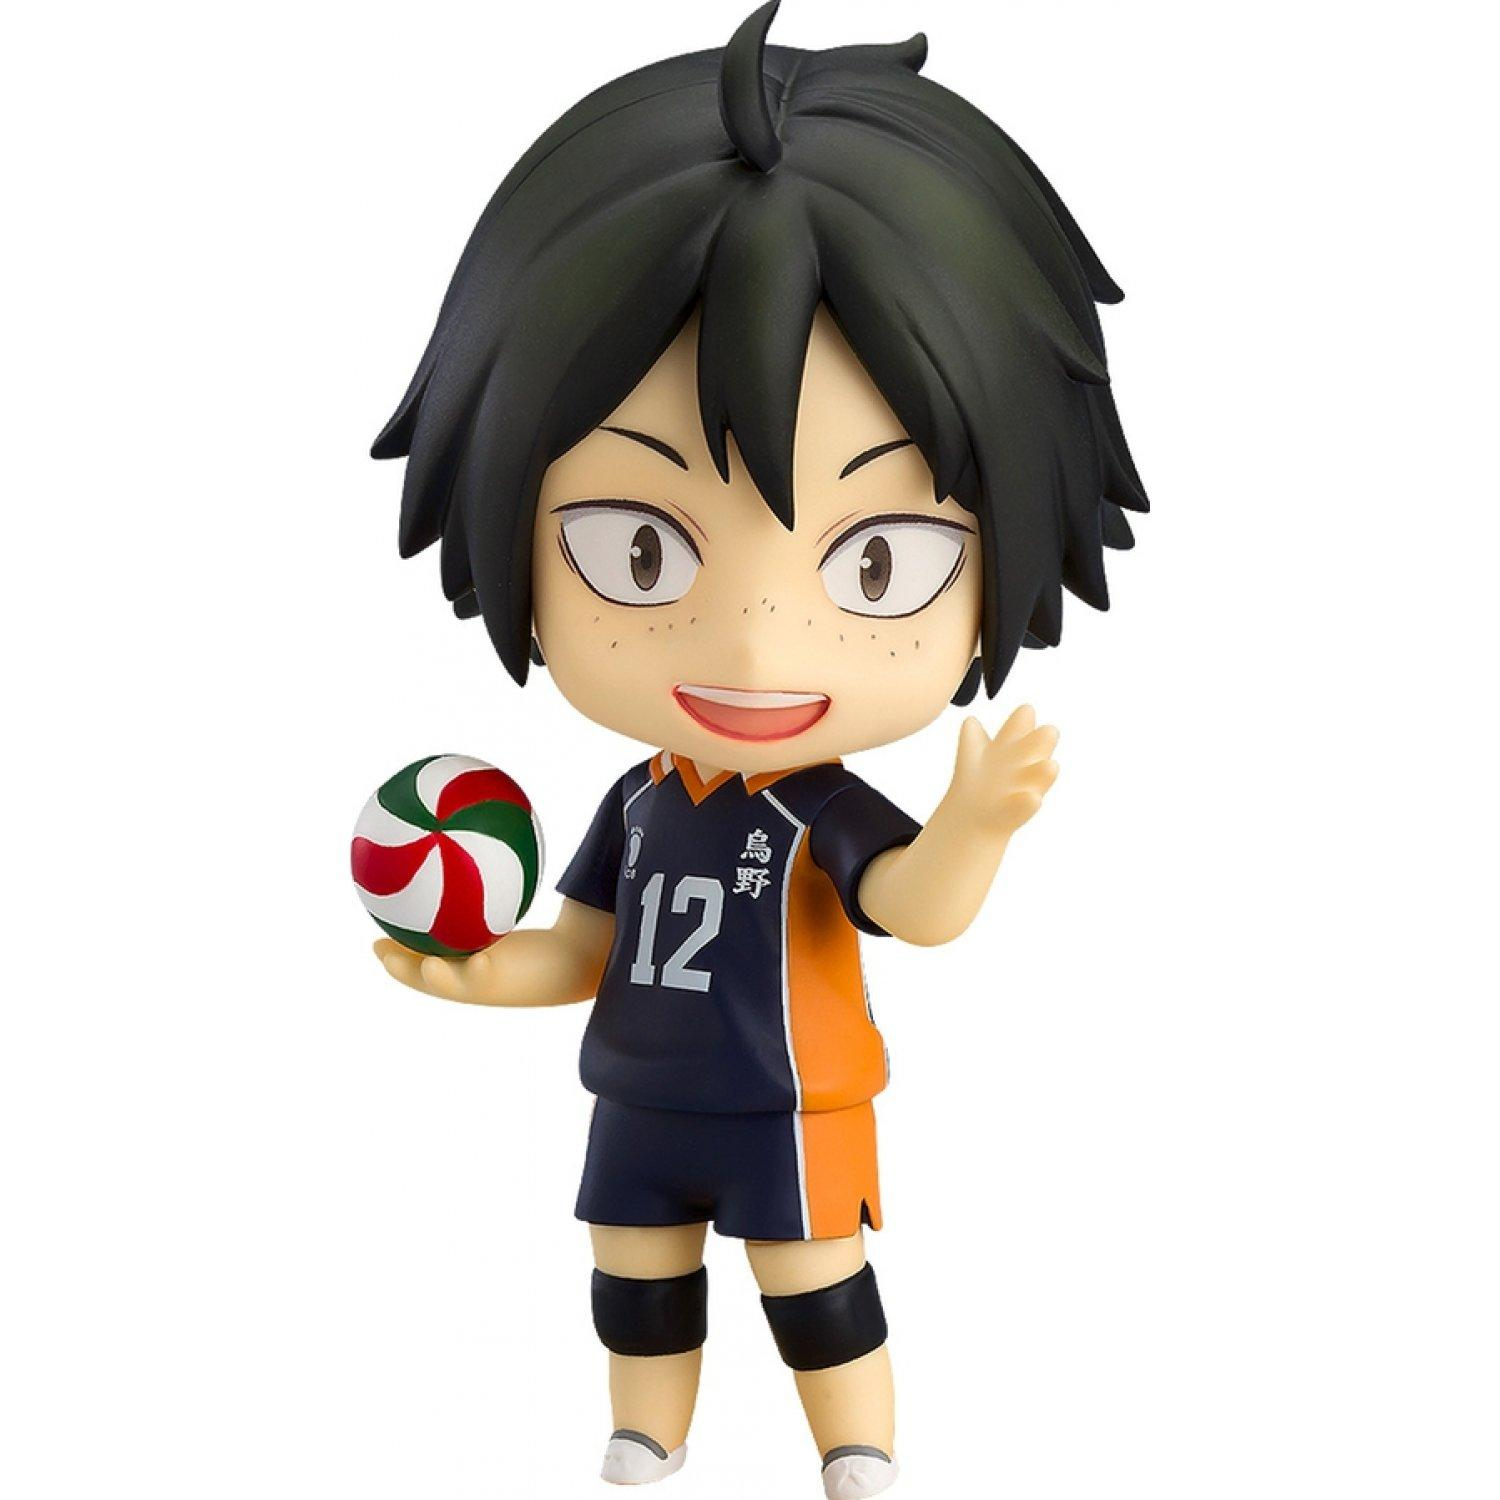 Nendoroid No. 765 Haikyu!! Karasuno High School VS Shiratorizawa